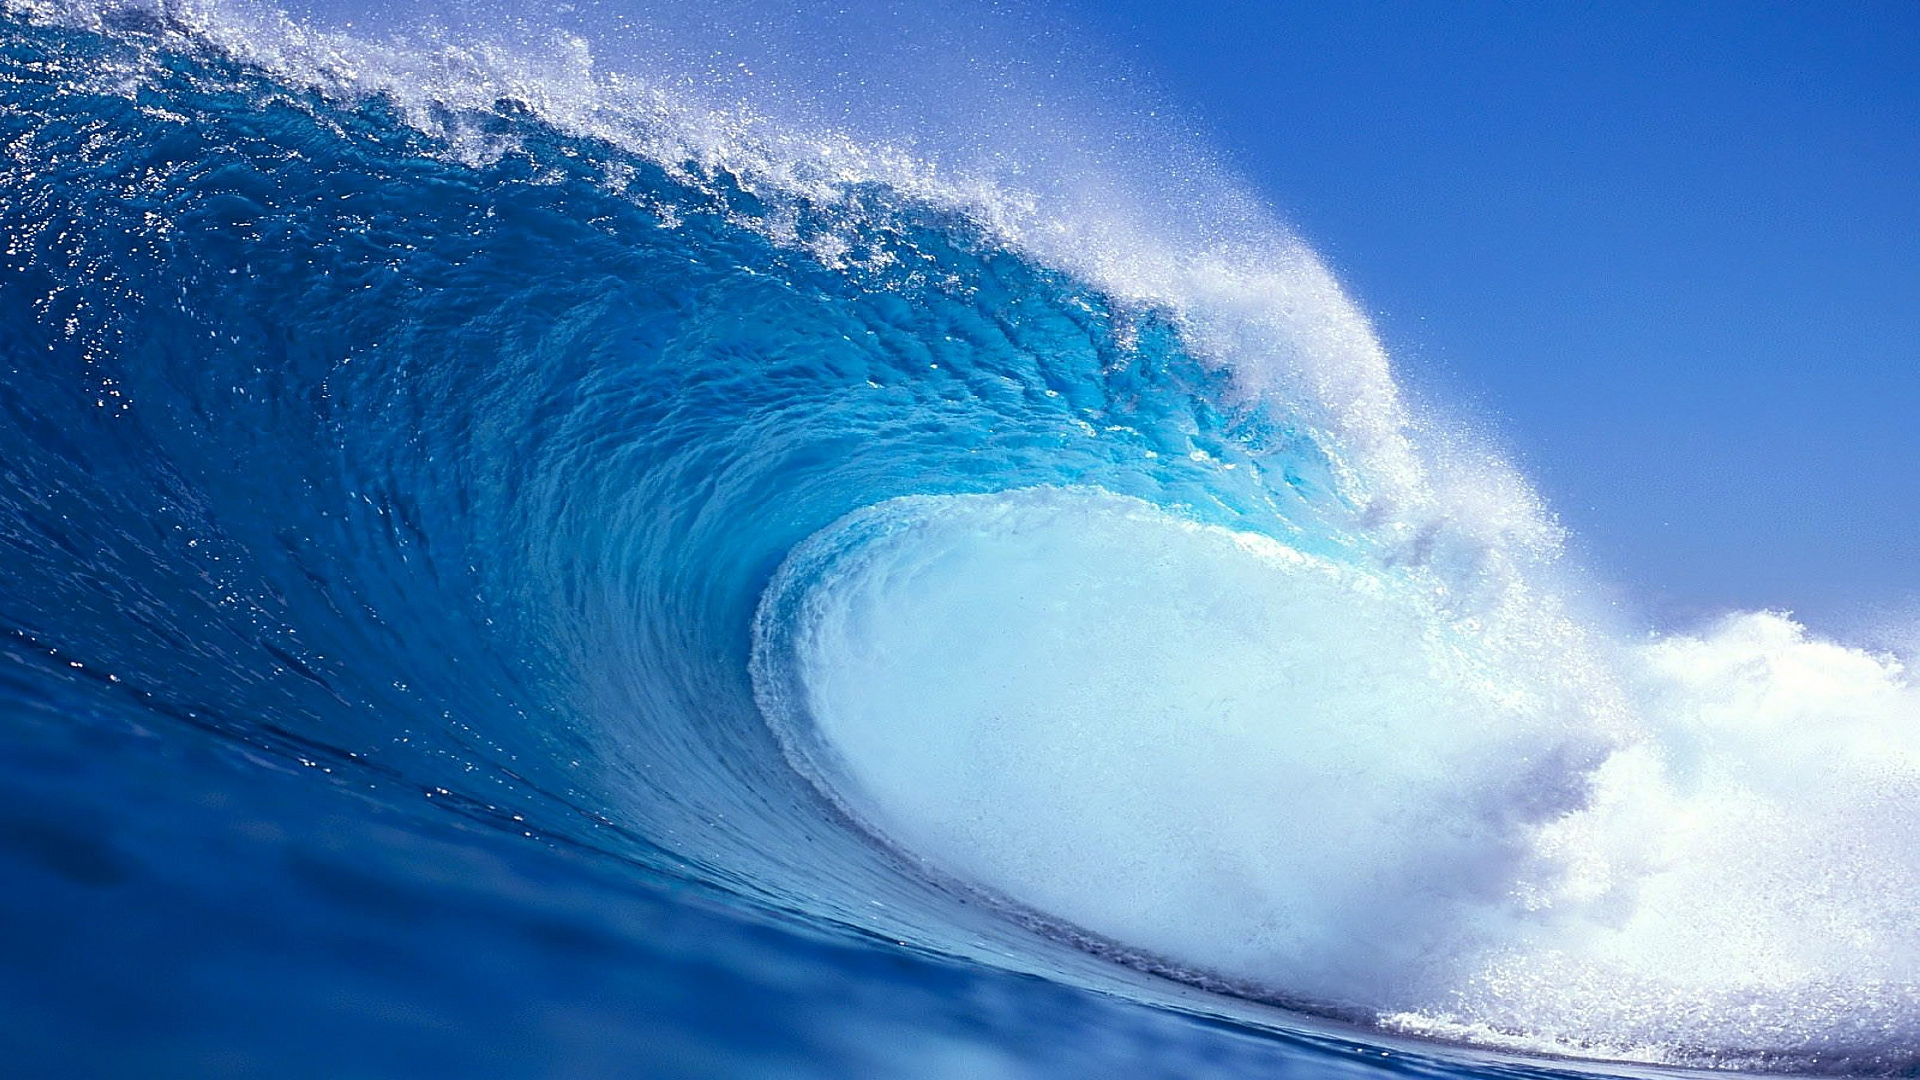 Download Hd Blue Wave Wallpaper Free by Warnerboutique